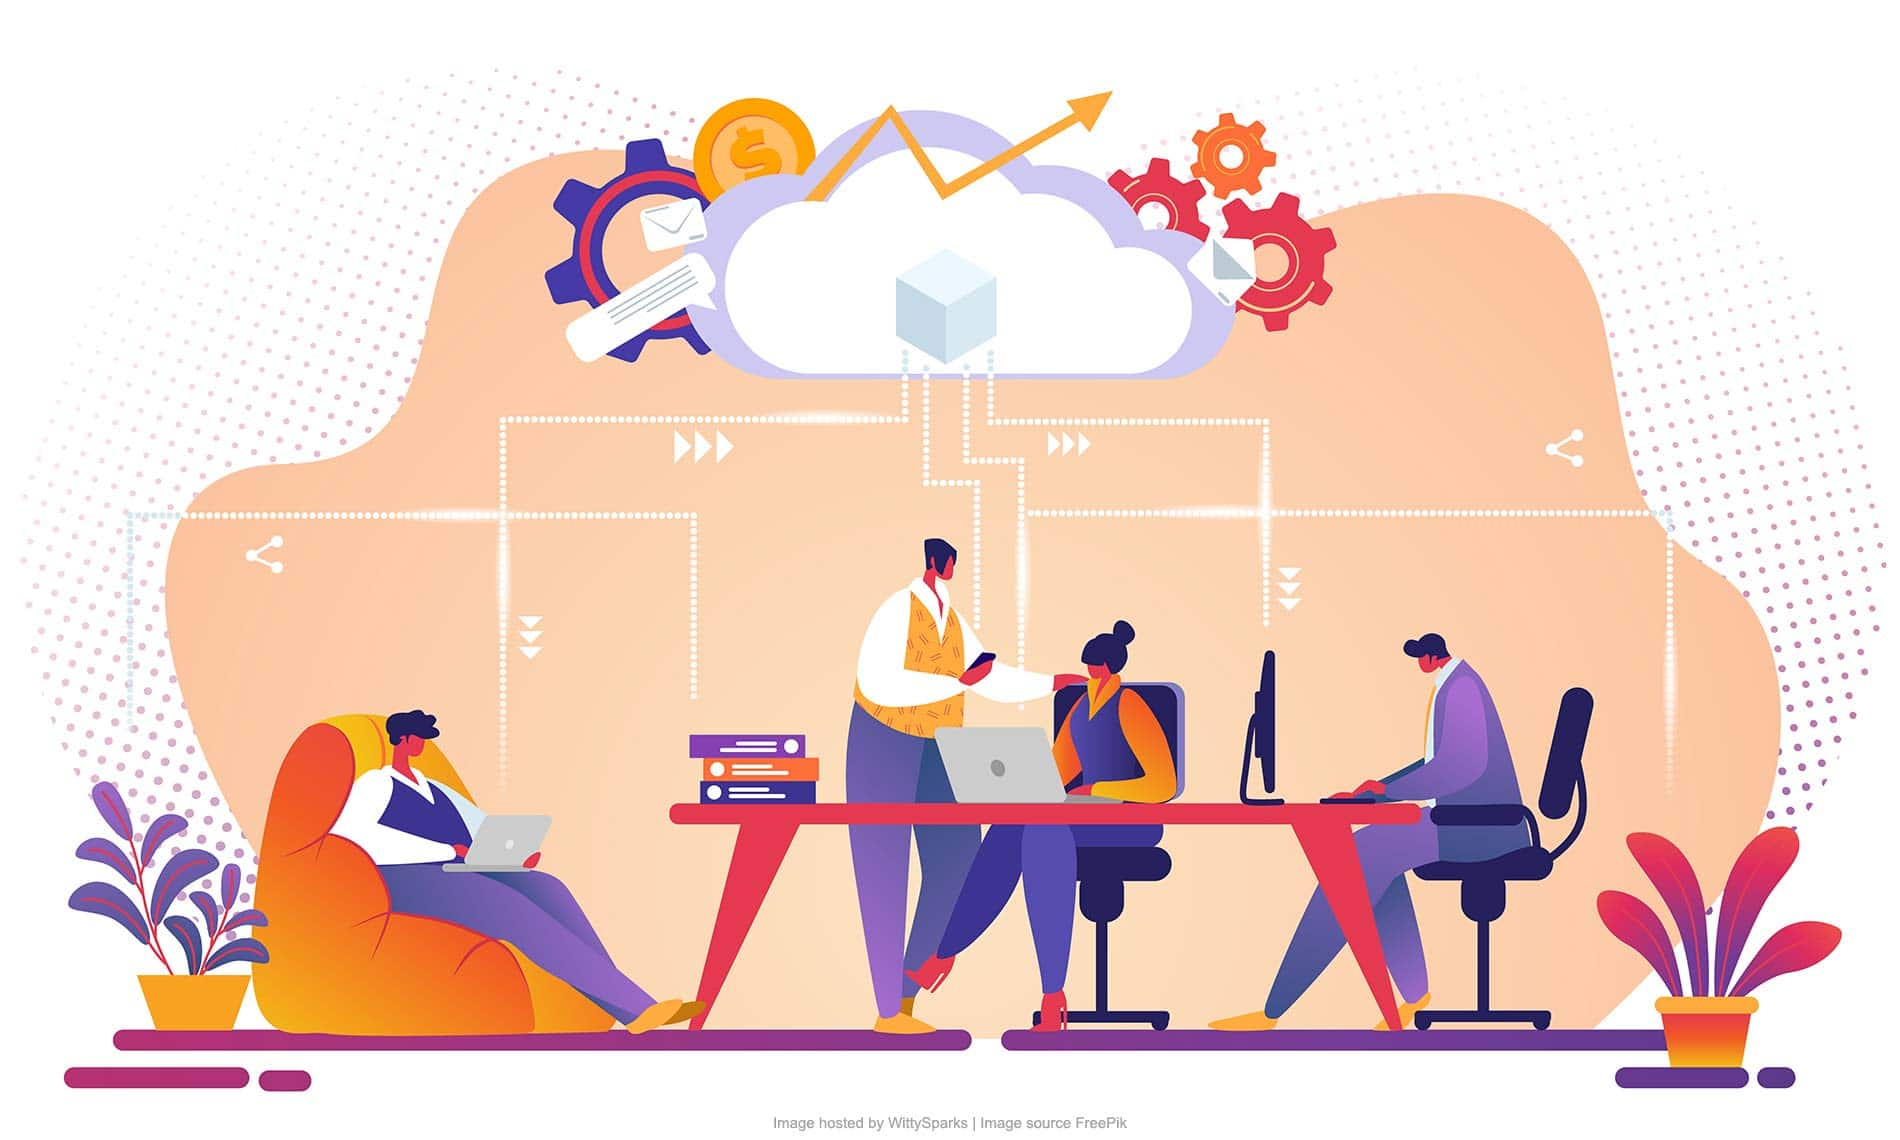 Future of Business technology and cloud computing